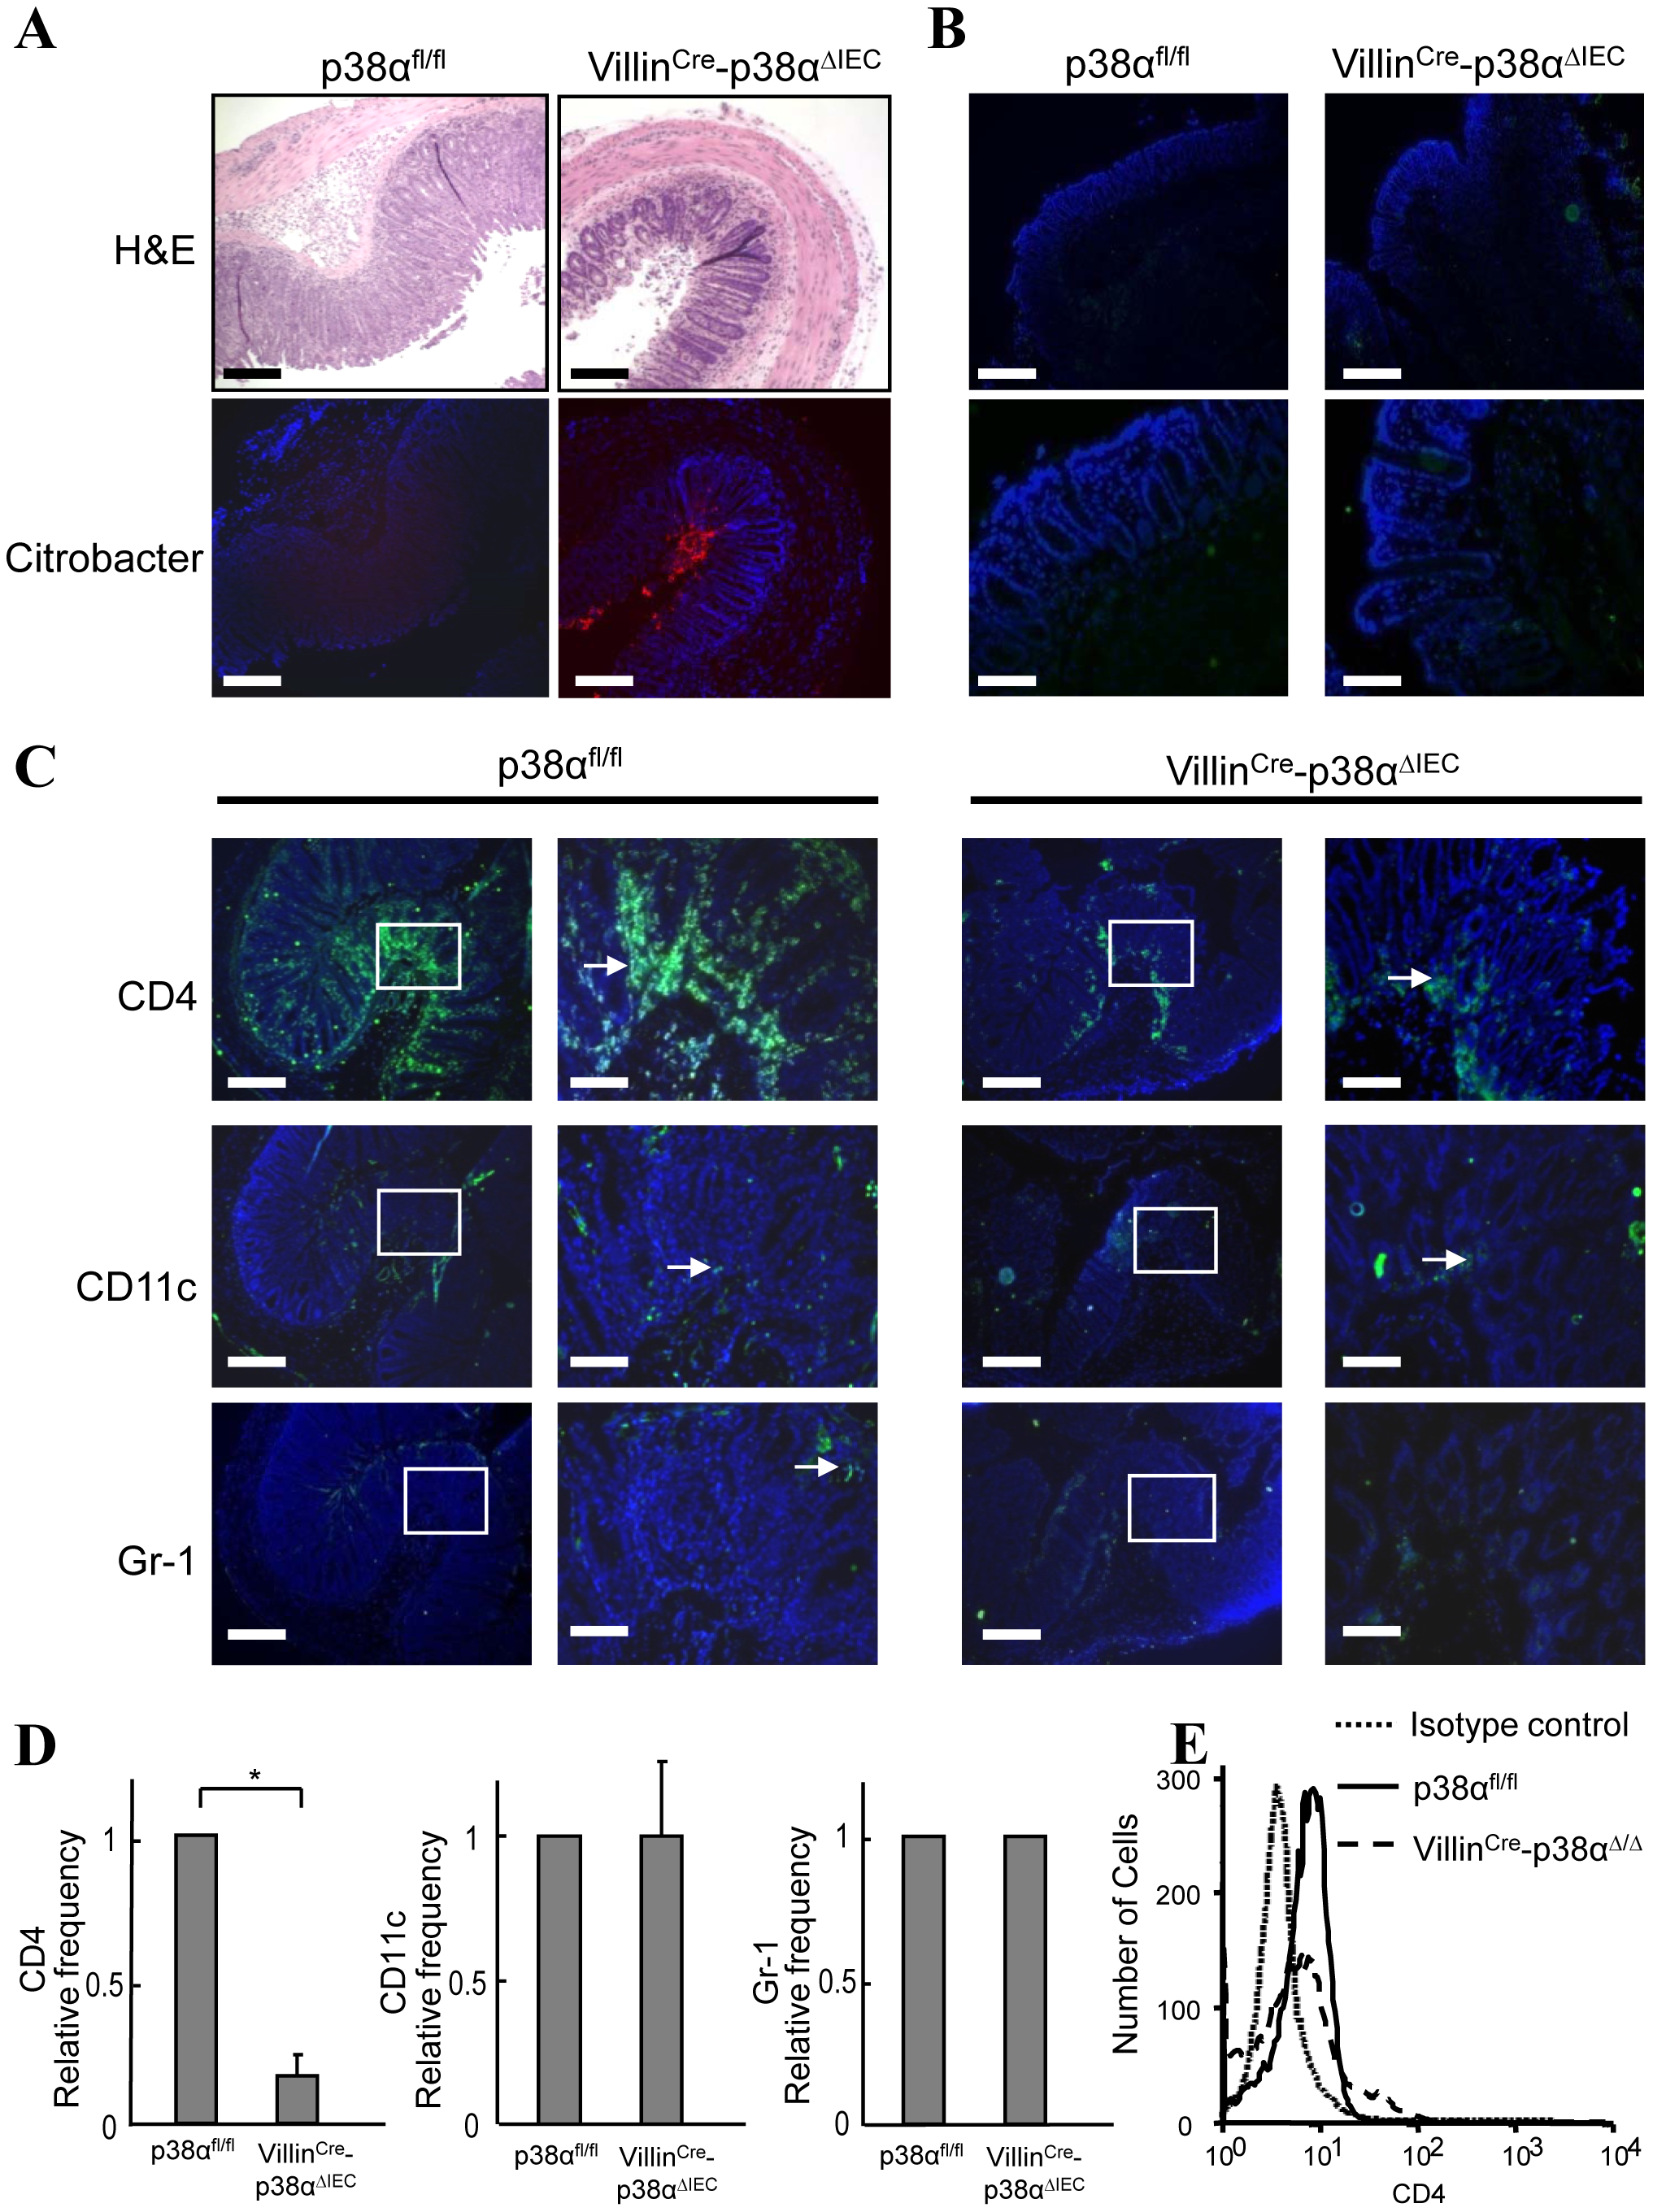 p38α in intestinal epithelial cells is required for chemokine expression and to recruit immune cells into the colon mucosa after <i>C. rodentium</i> infection.